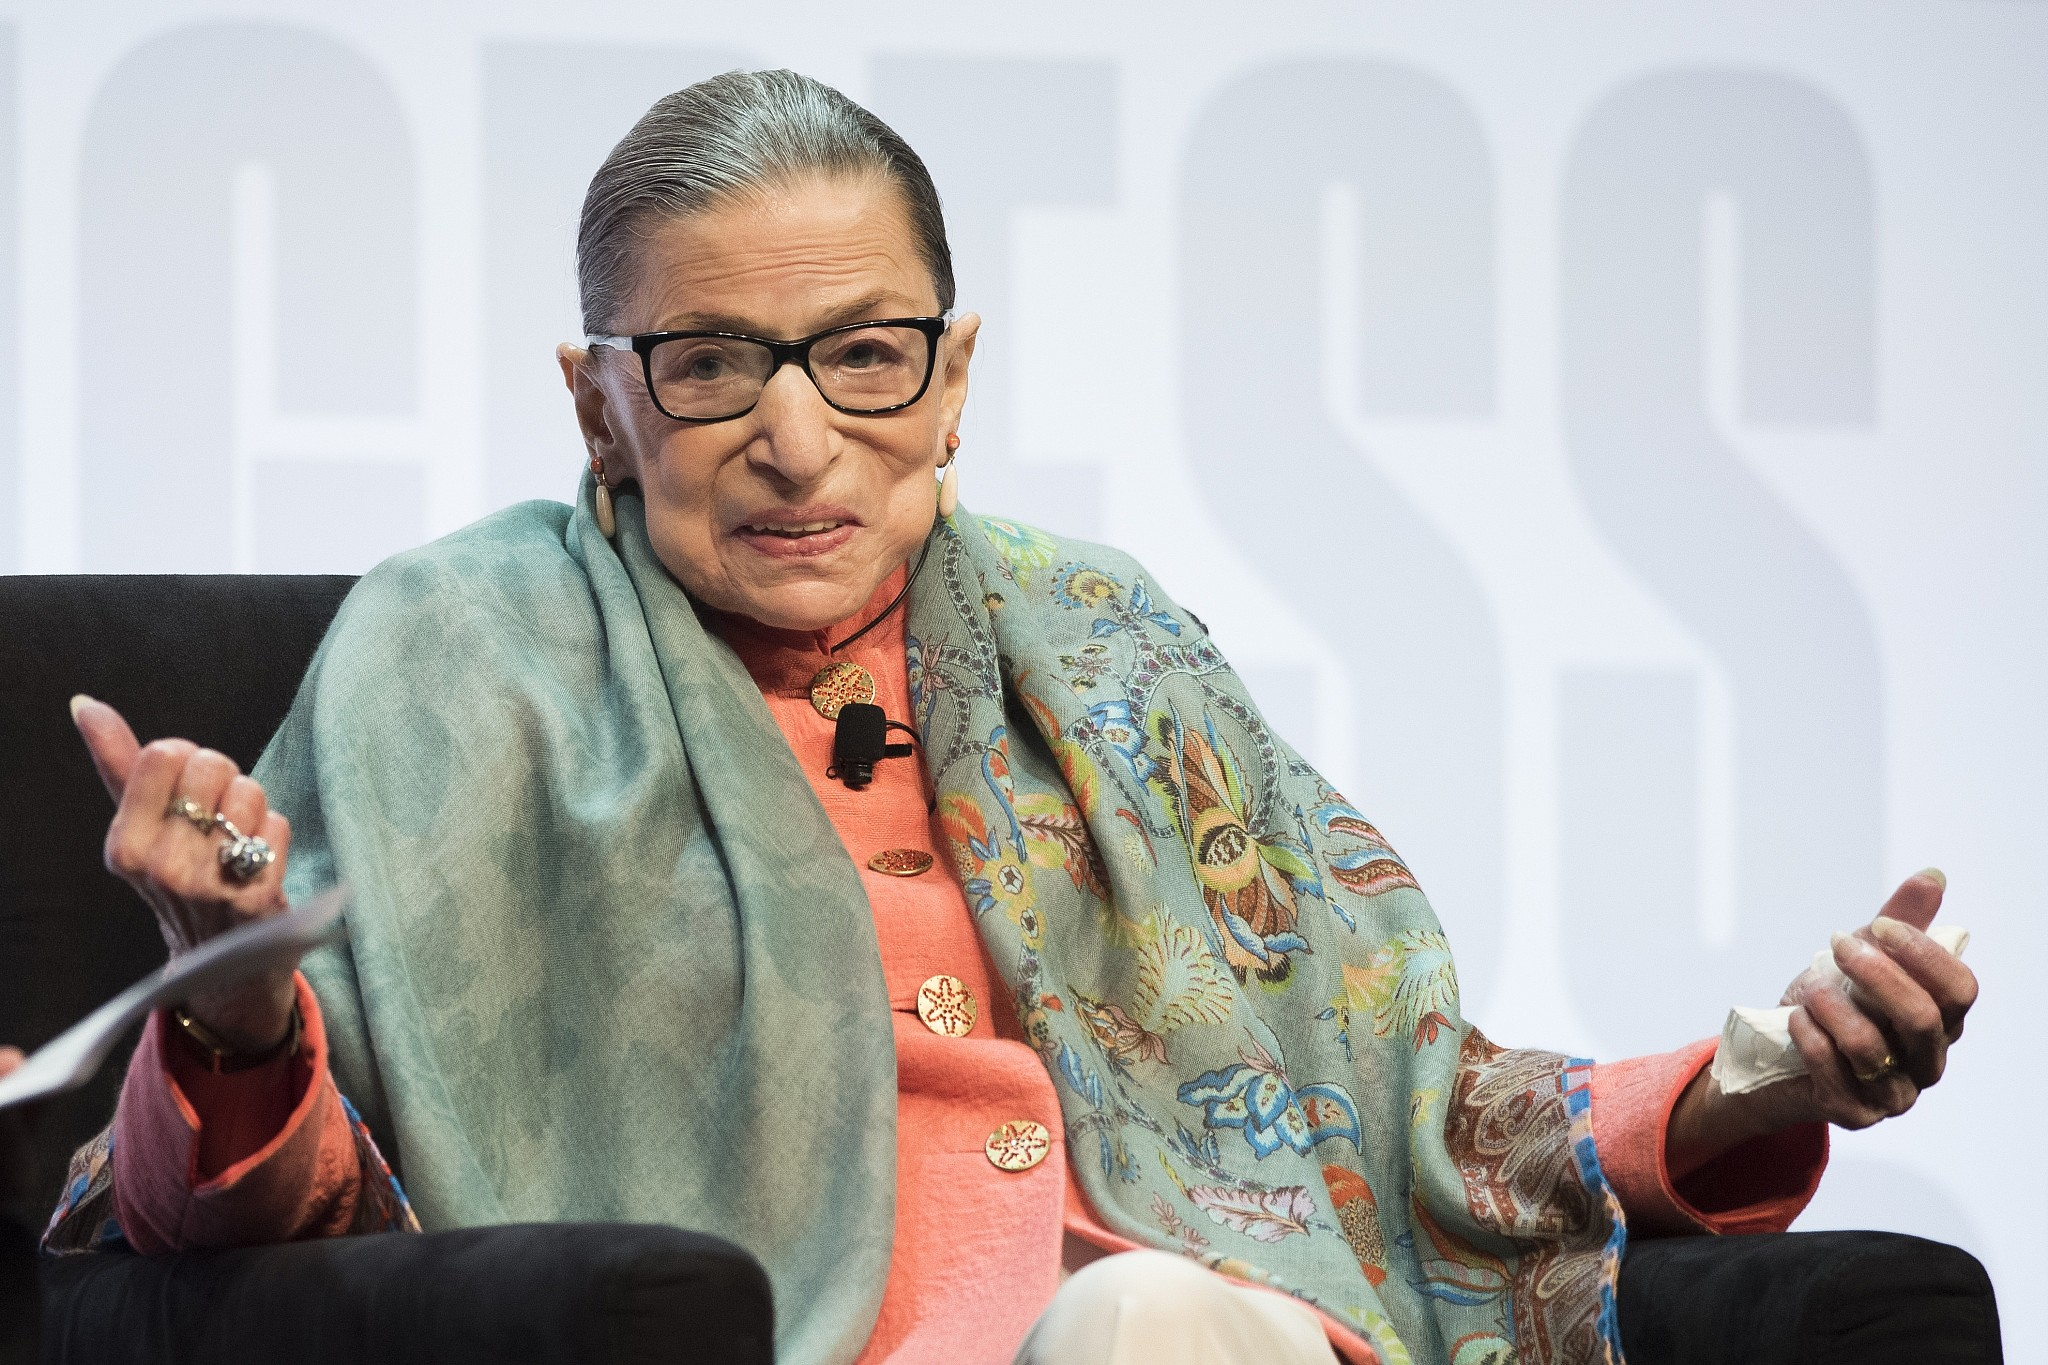 Supreme Court Justice Ruth Bader Ginsburg released from hospital after nonsurgical treatment